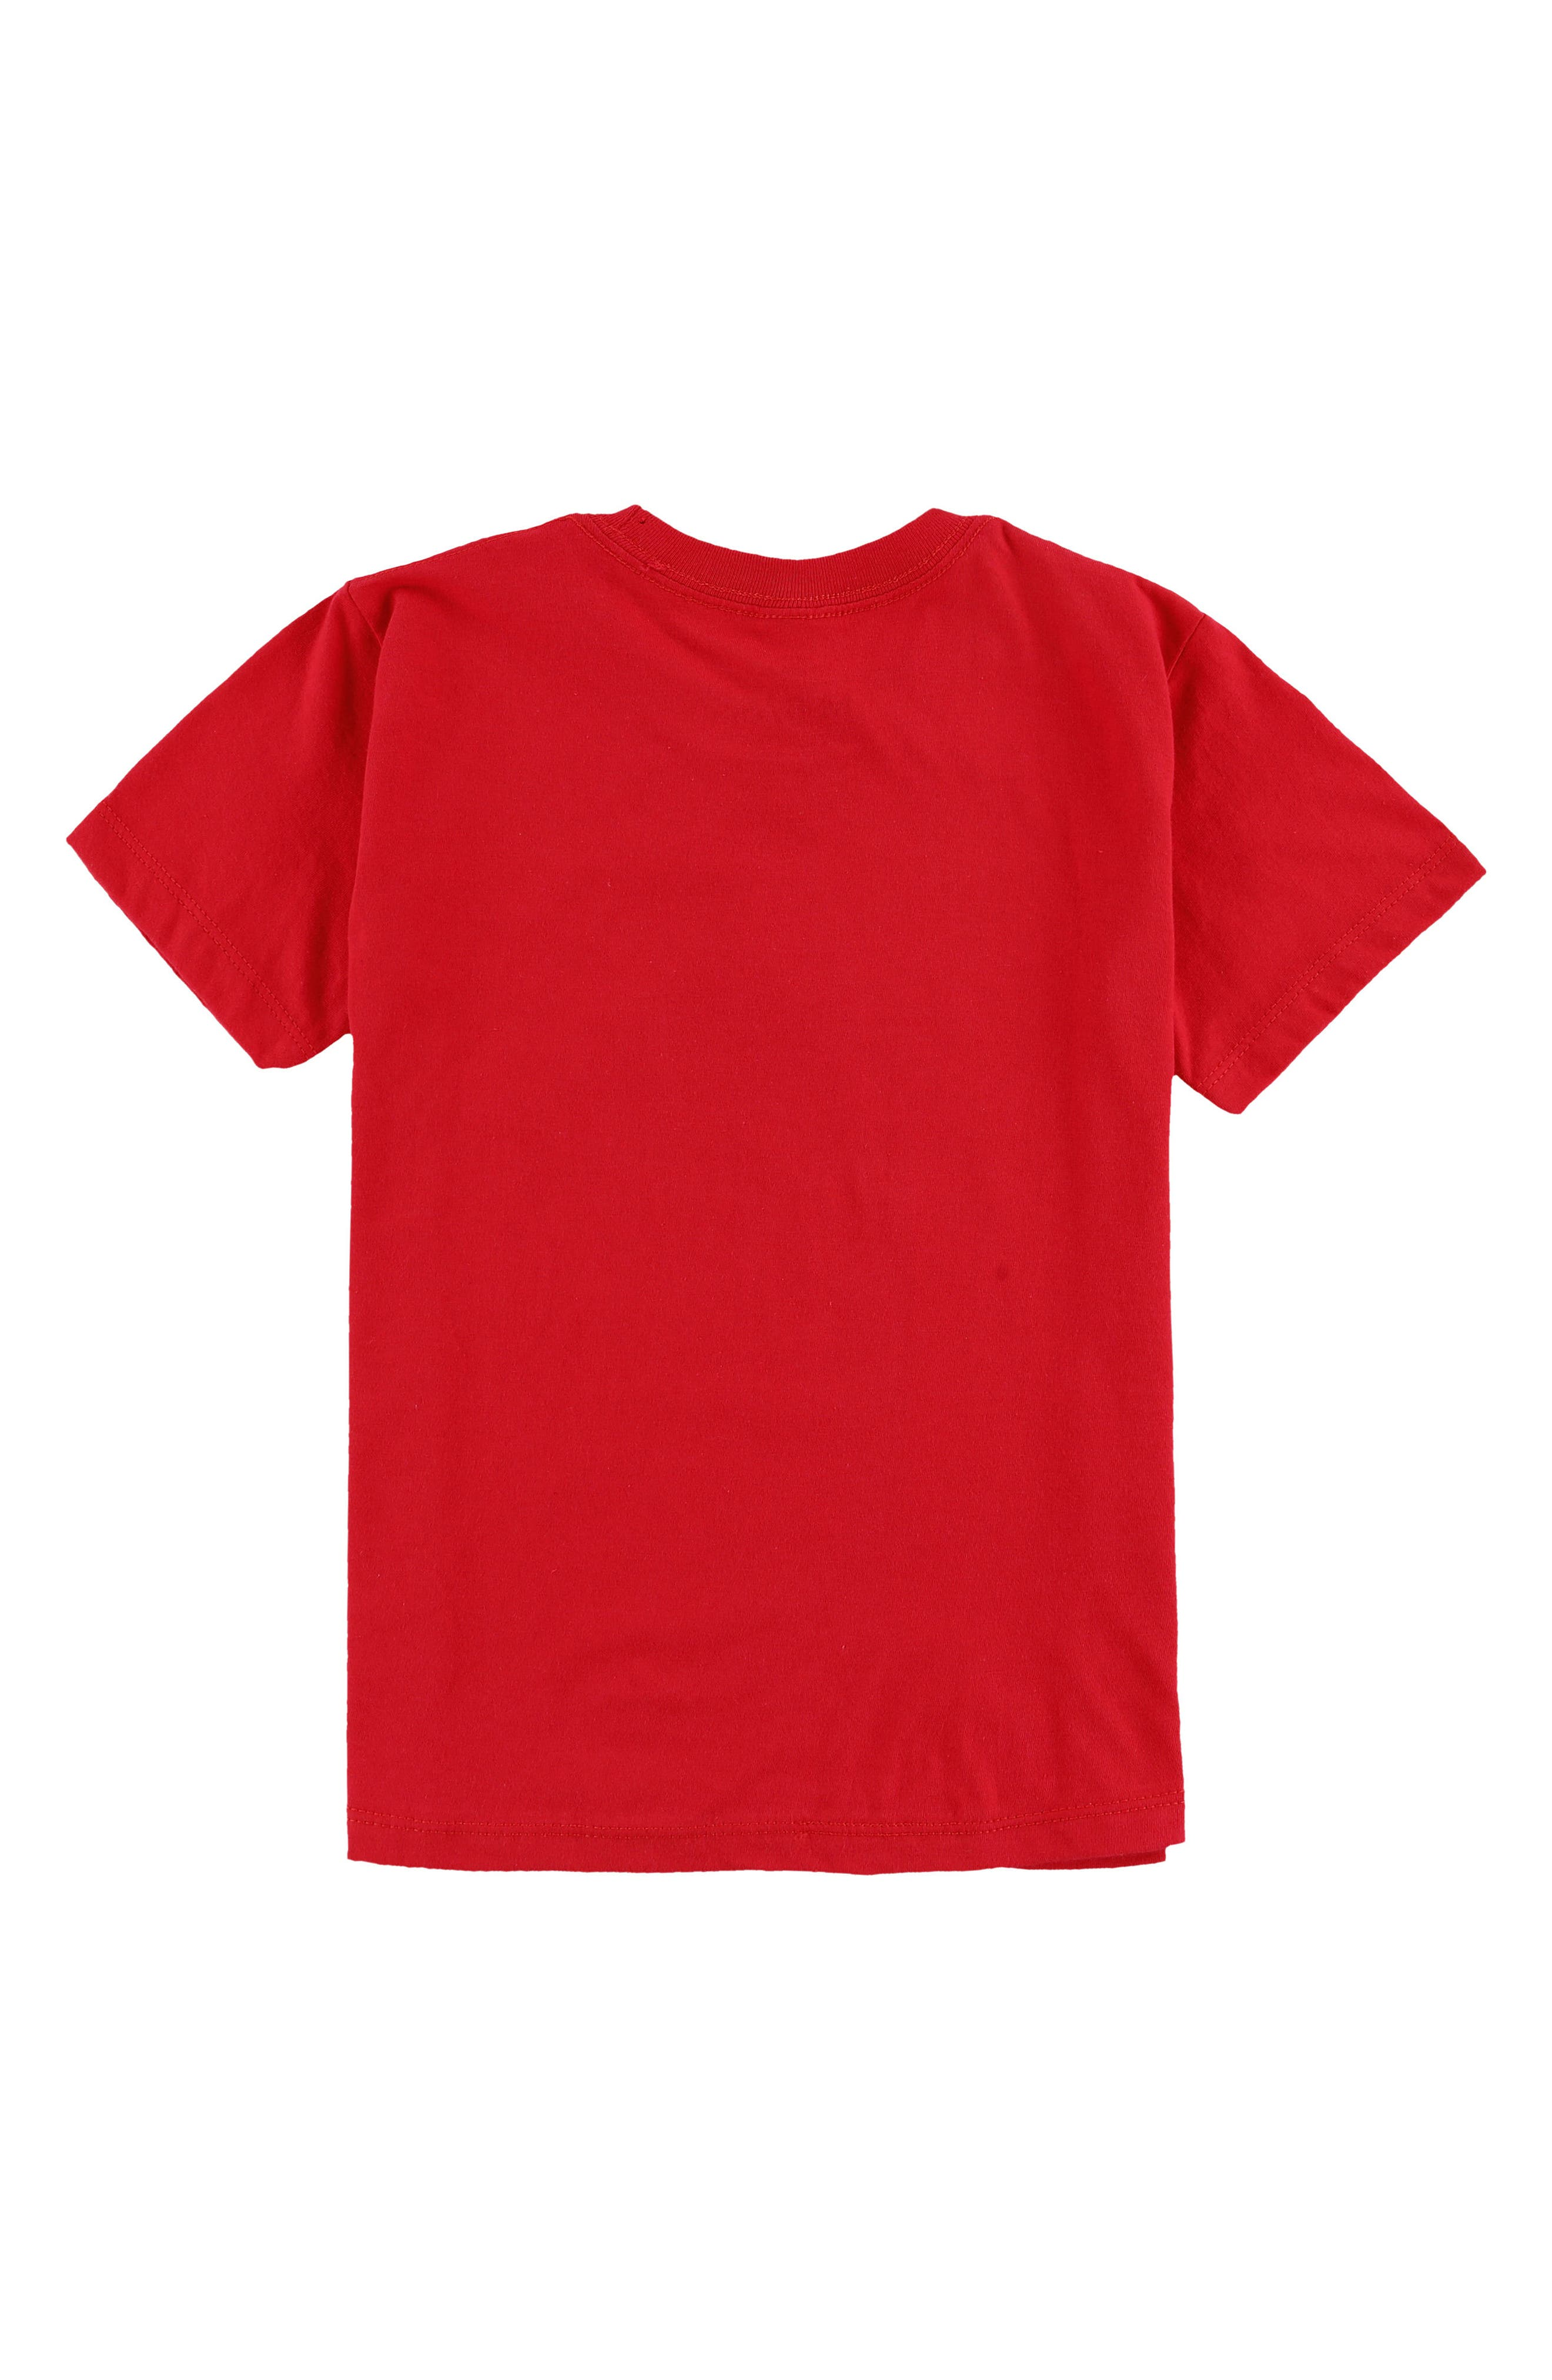 Sandspit Graphic T-Shirt,                             Alternate thumbnail 2, color,                             Heather Red